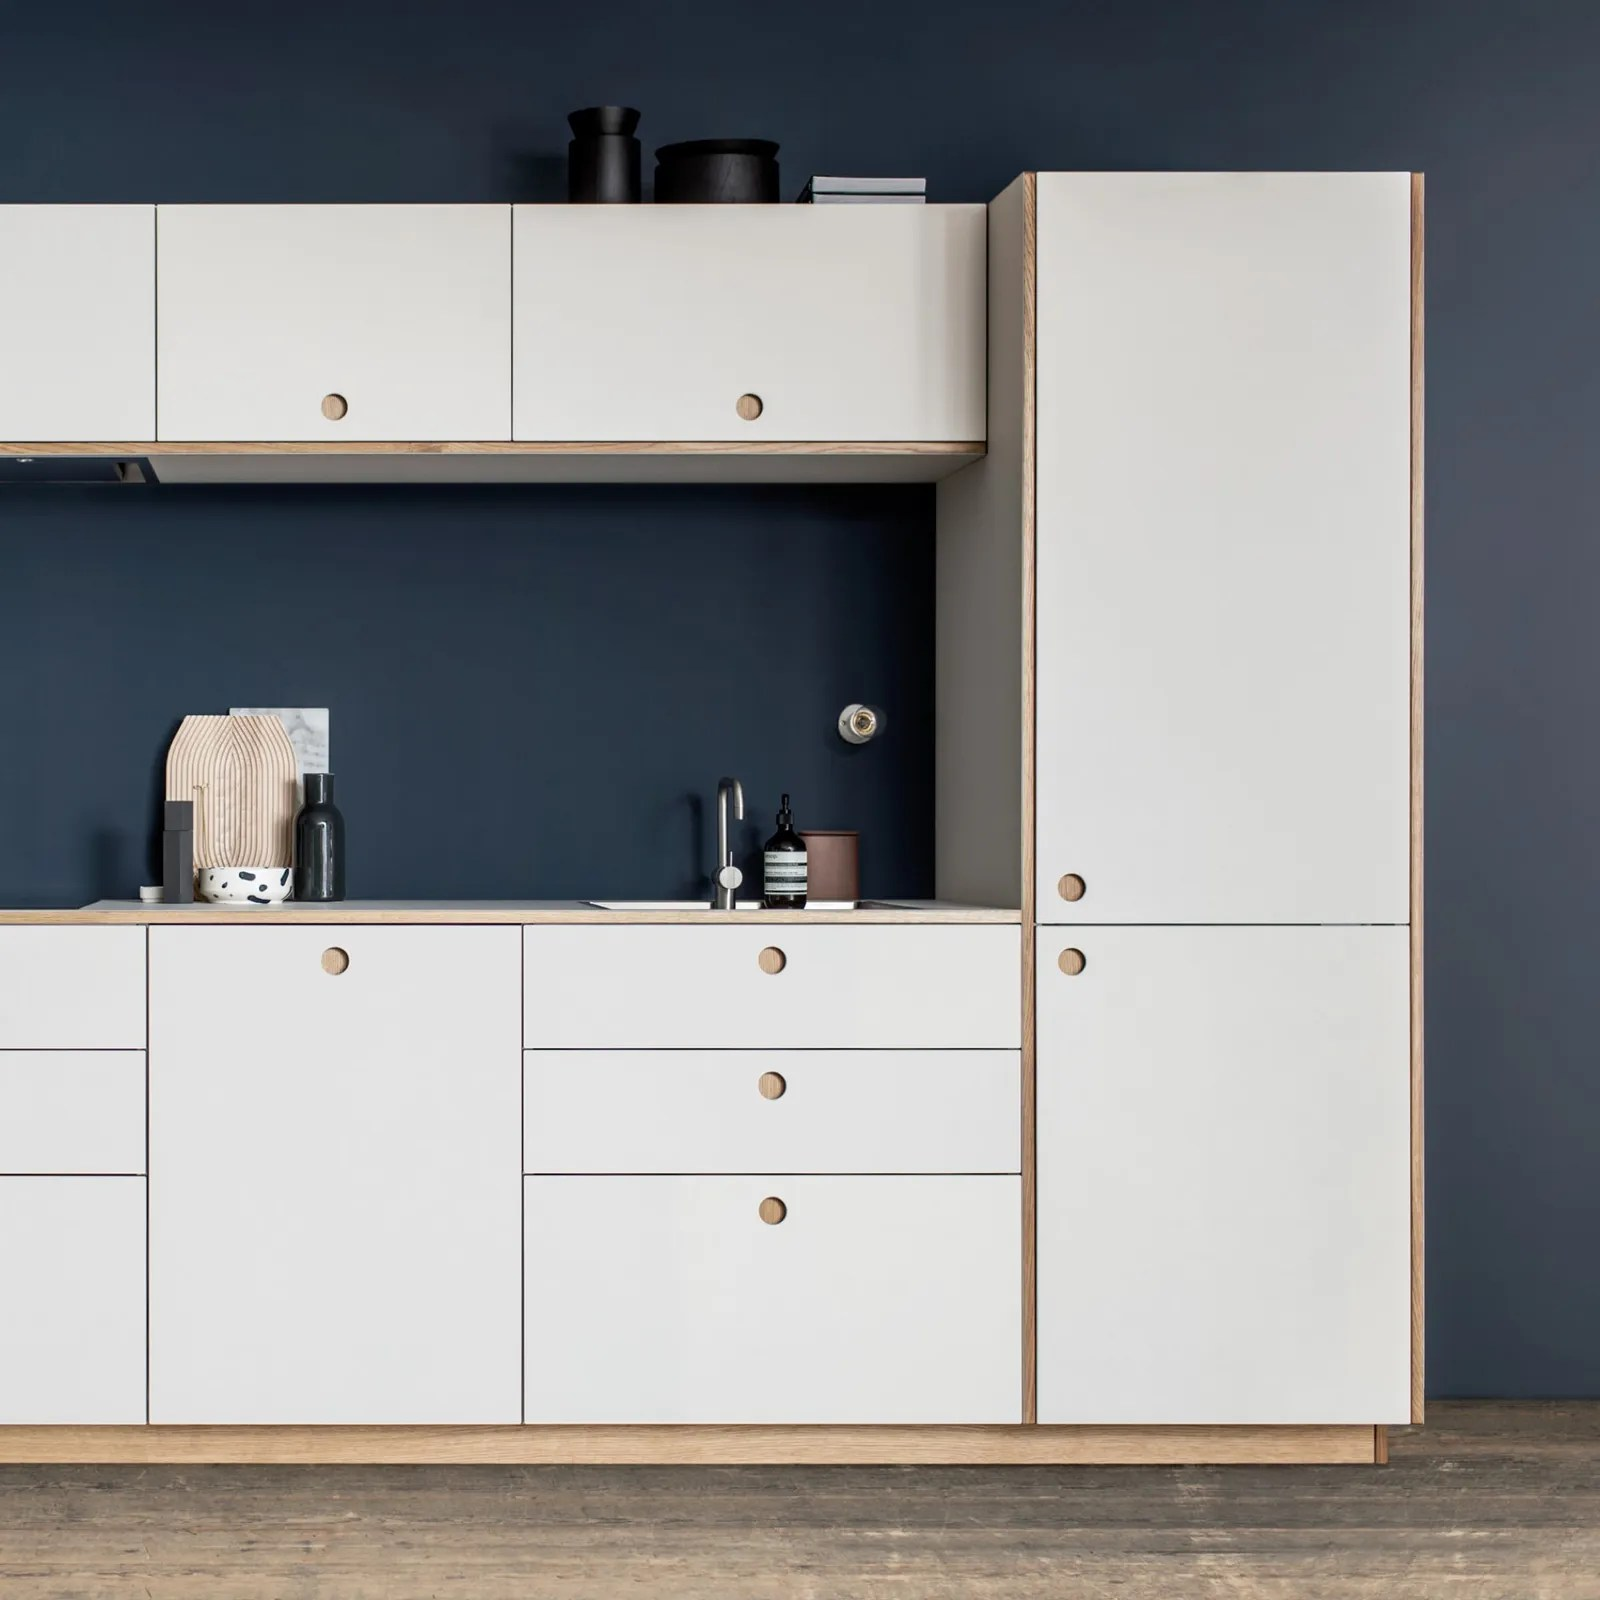 ikea kitchen cabinets moen chateau faucet repair these are the best fronts for architectural white with centered finger pulls in blue kithchen